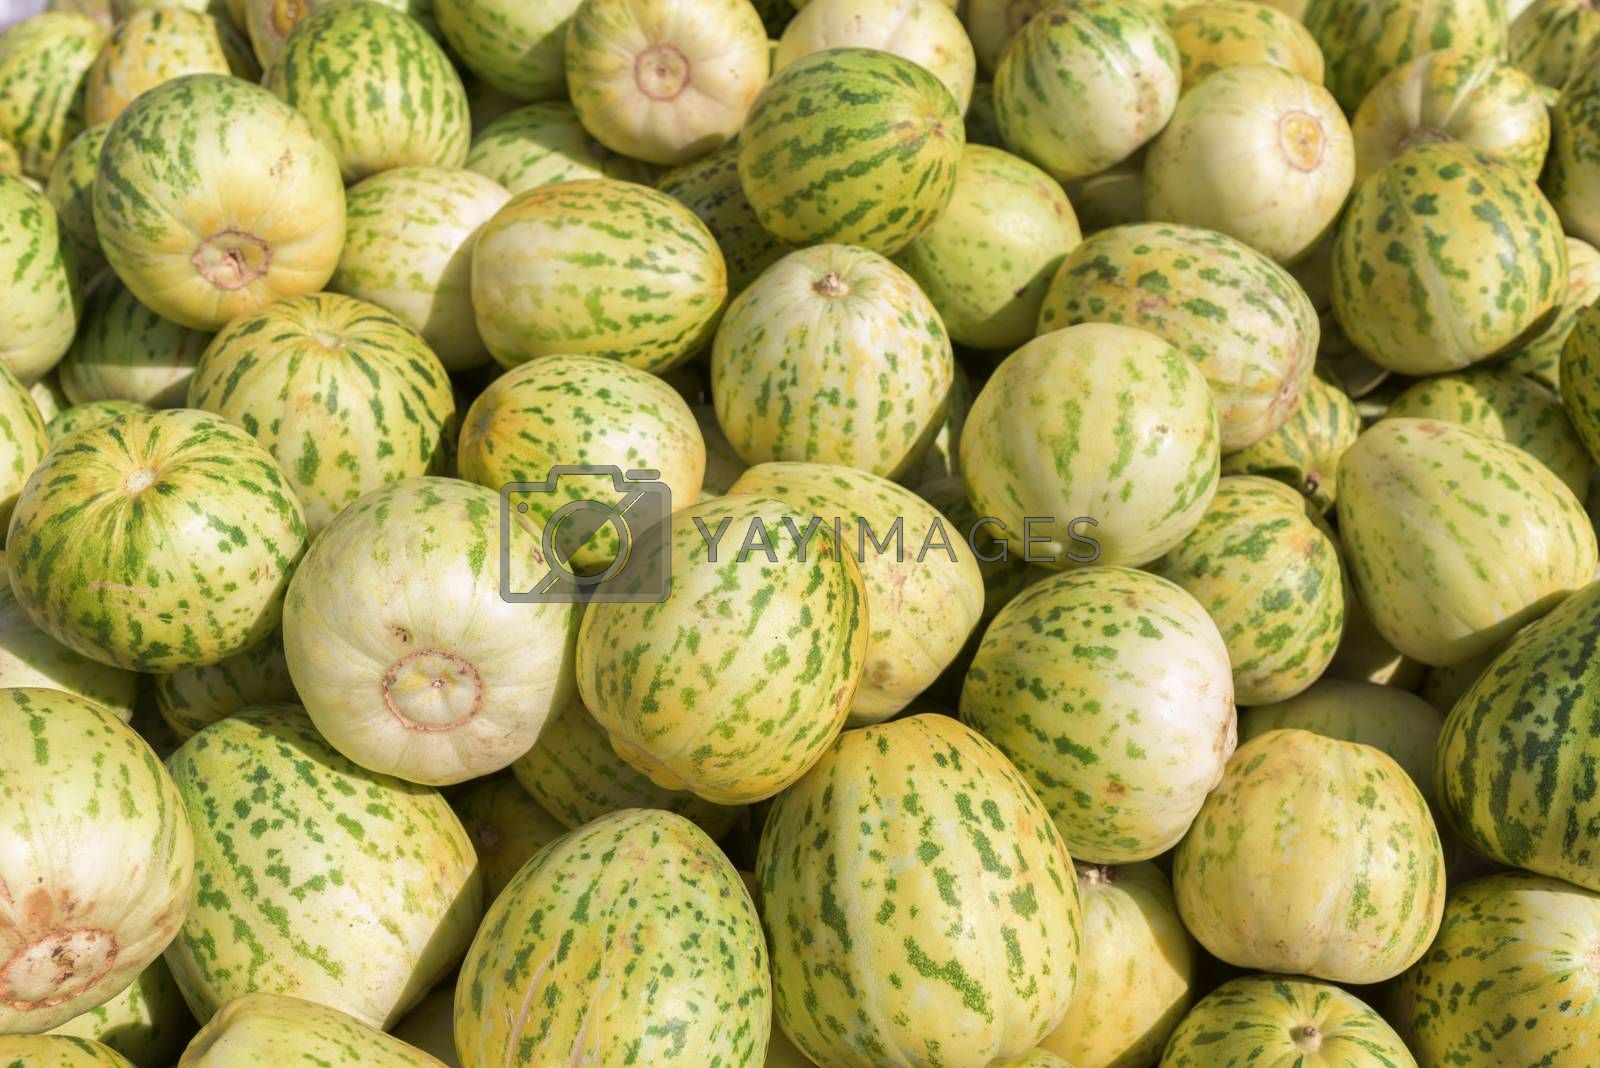 Bunch of small melons. Group of fresh ripe yellow sweet melons